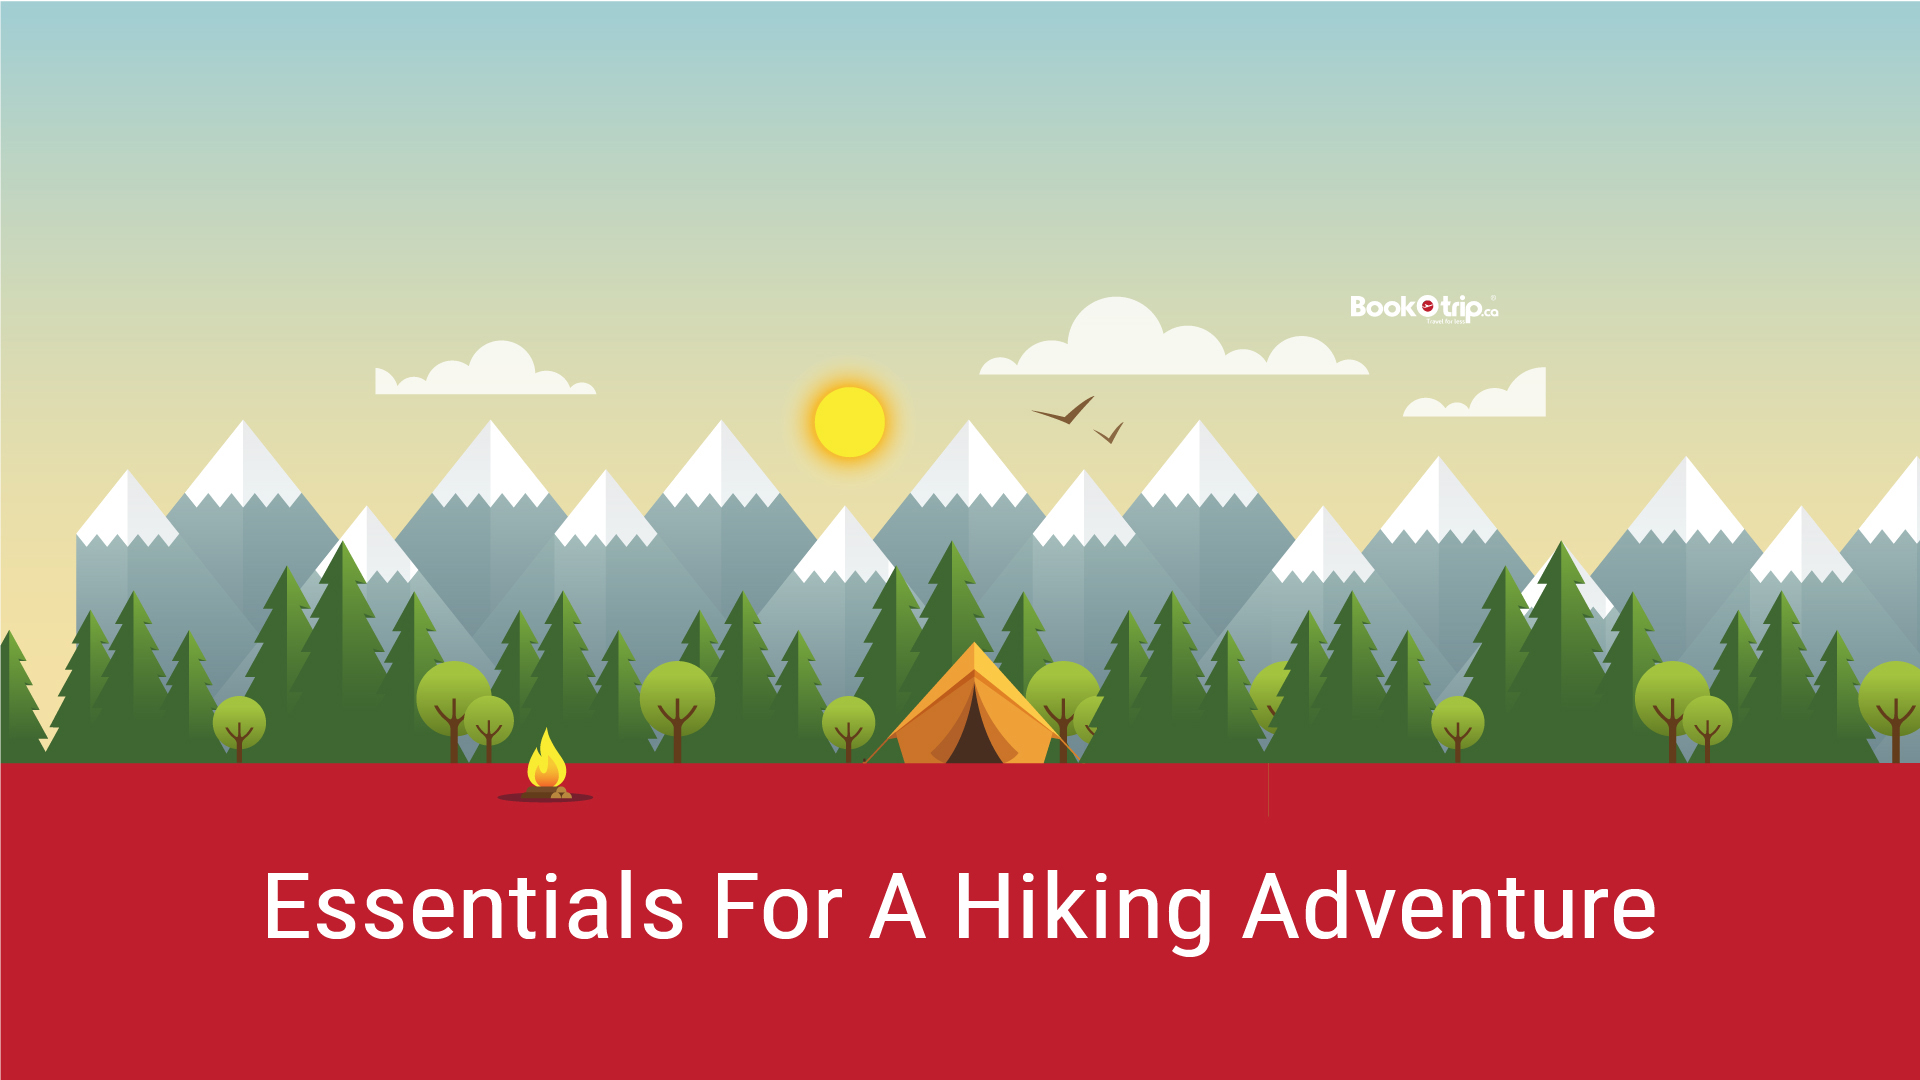 Adventure Vacation Deals- BookOtrip.ca